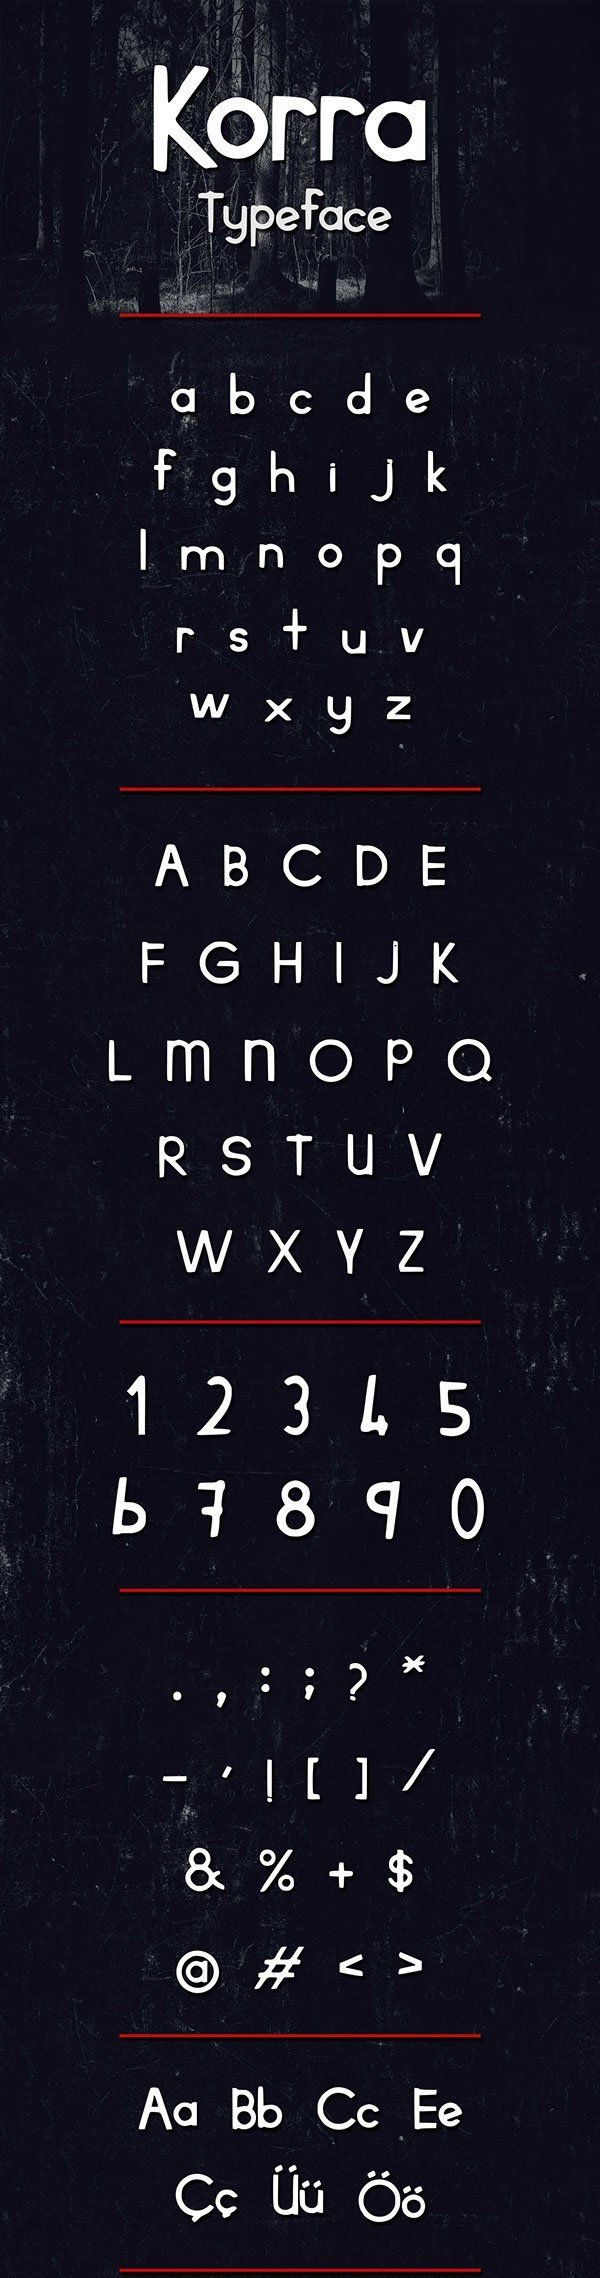 Download 245+ Best Free Fonts | Best free fonts, Free fonts ...